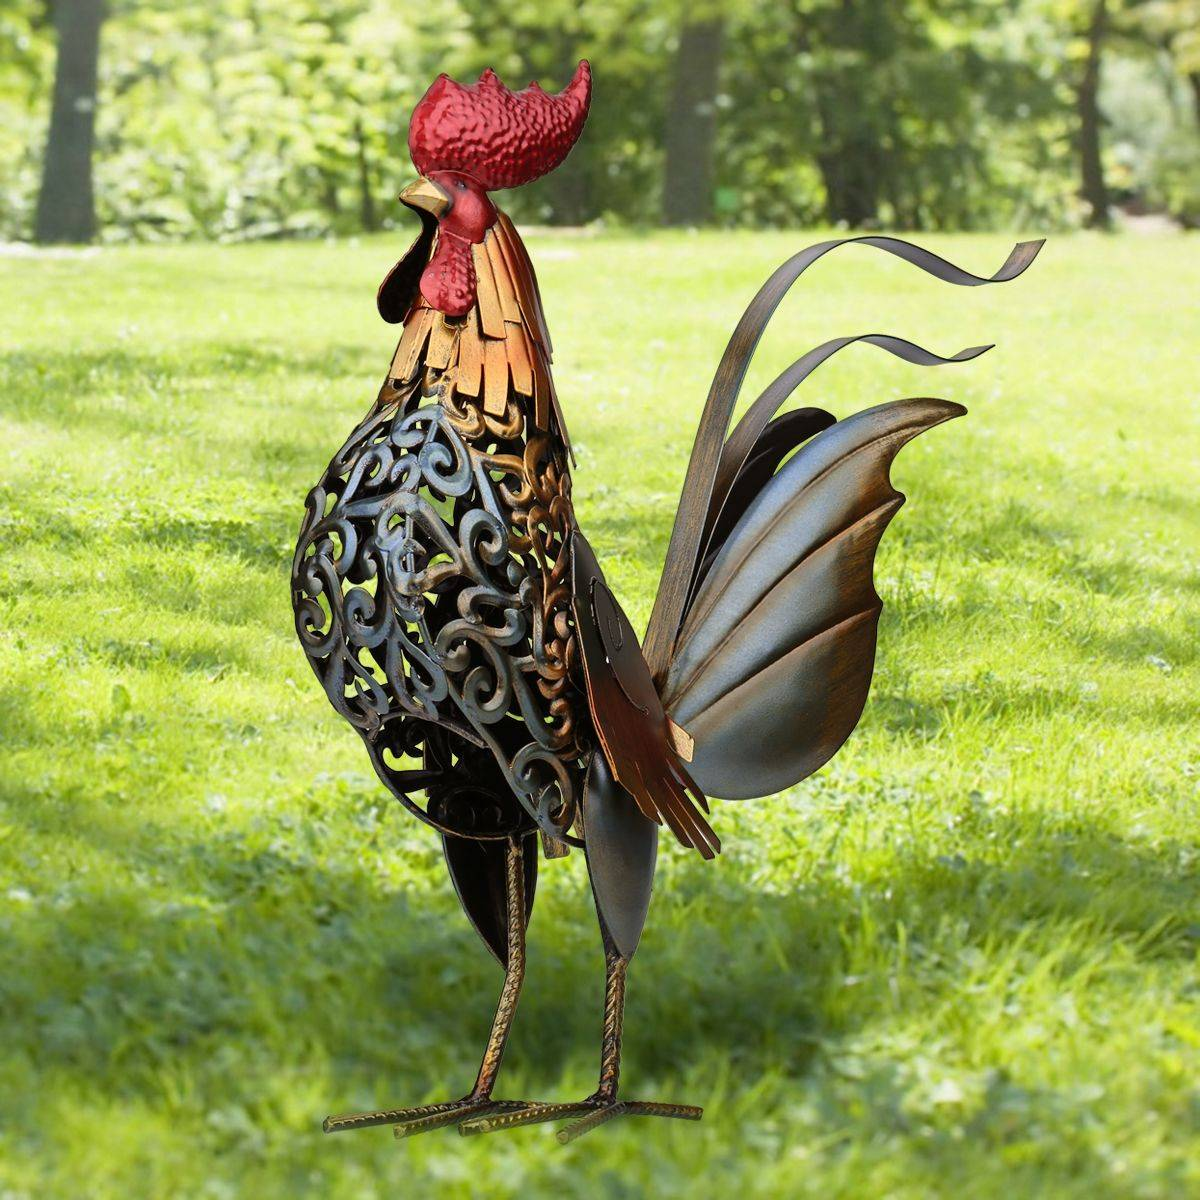 Metal Figurine Rooster Sculpture Carved Iron Rooster Home Furnishing Articles Artwork Home Decoration